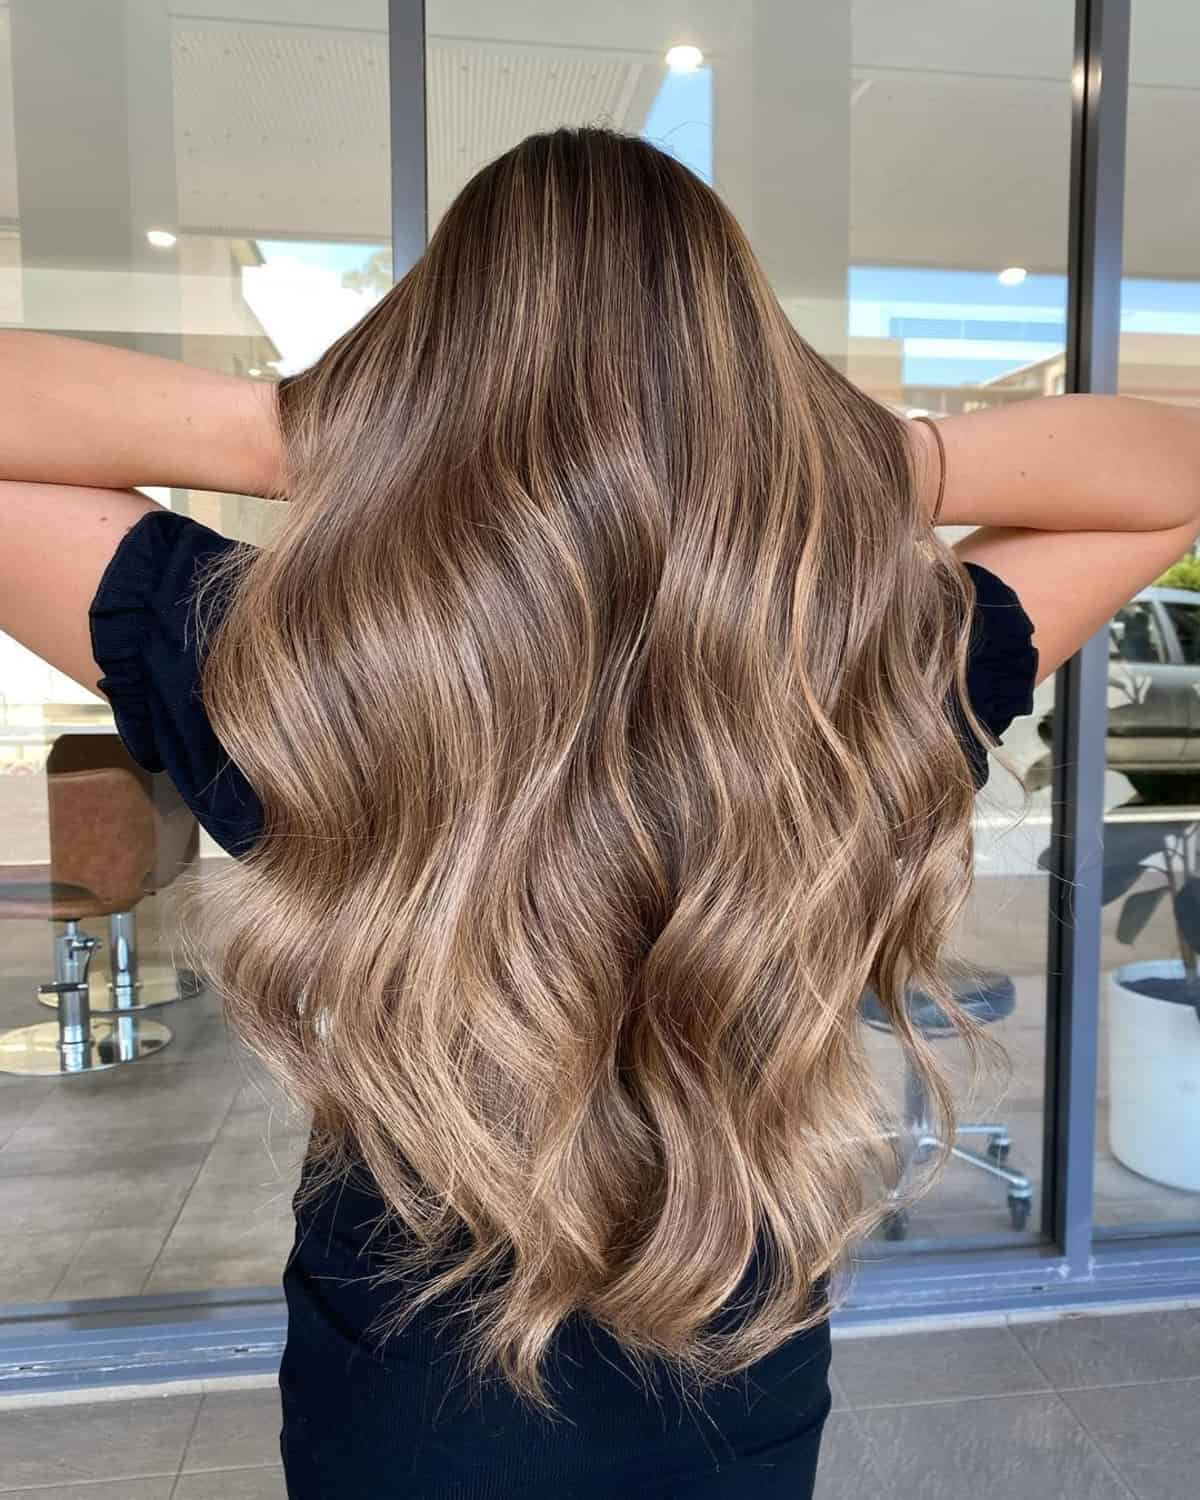 20 BEST Light Brown Hair Color Ideas According to Colorists